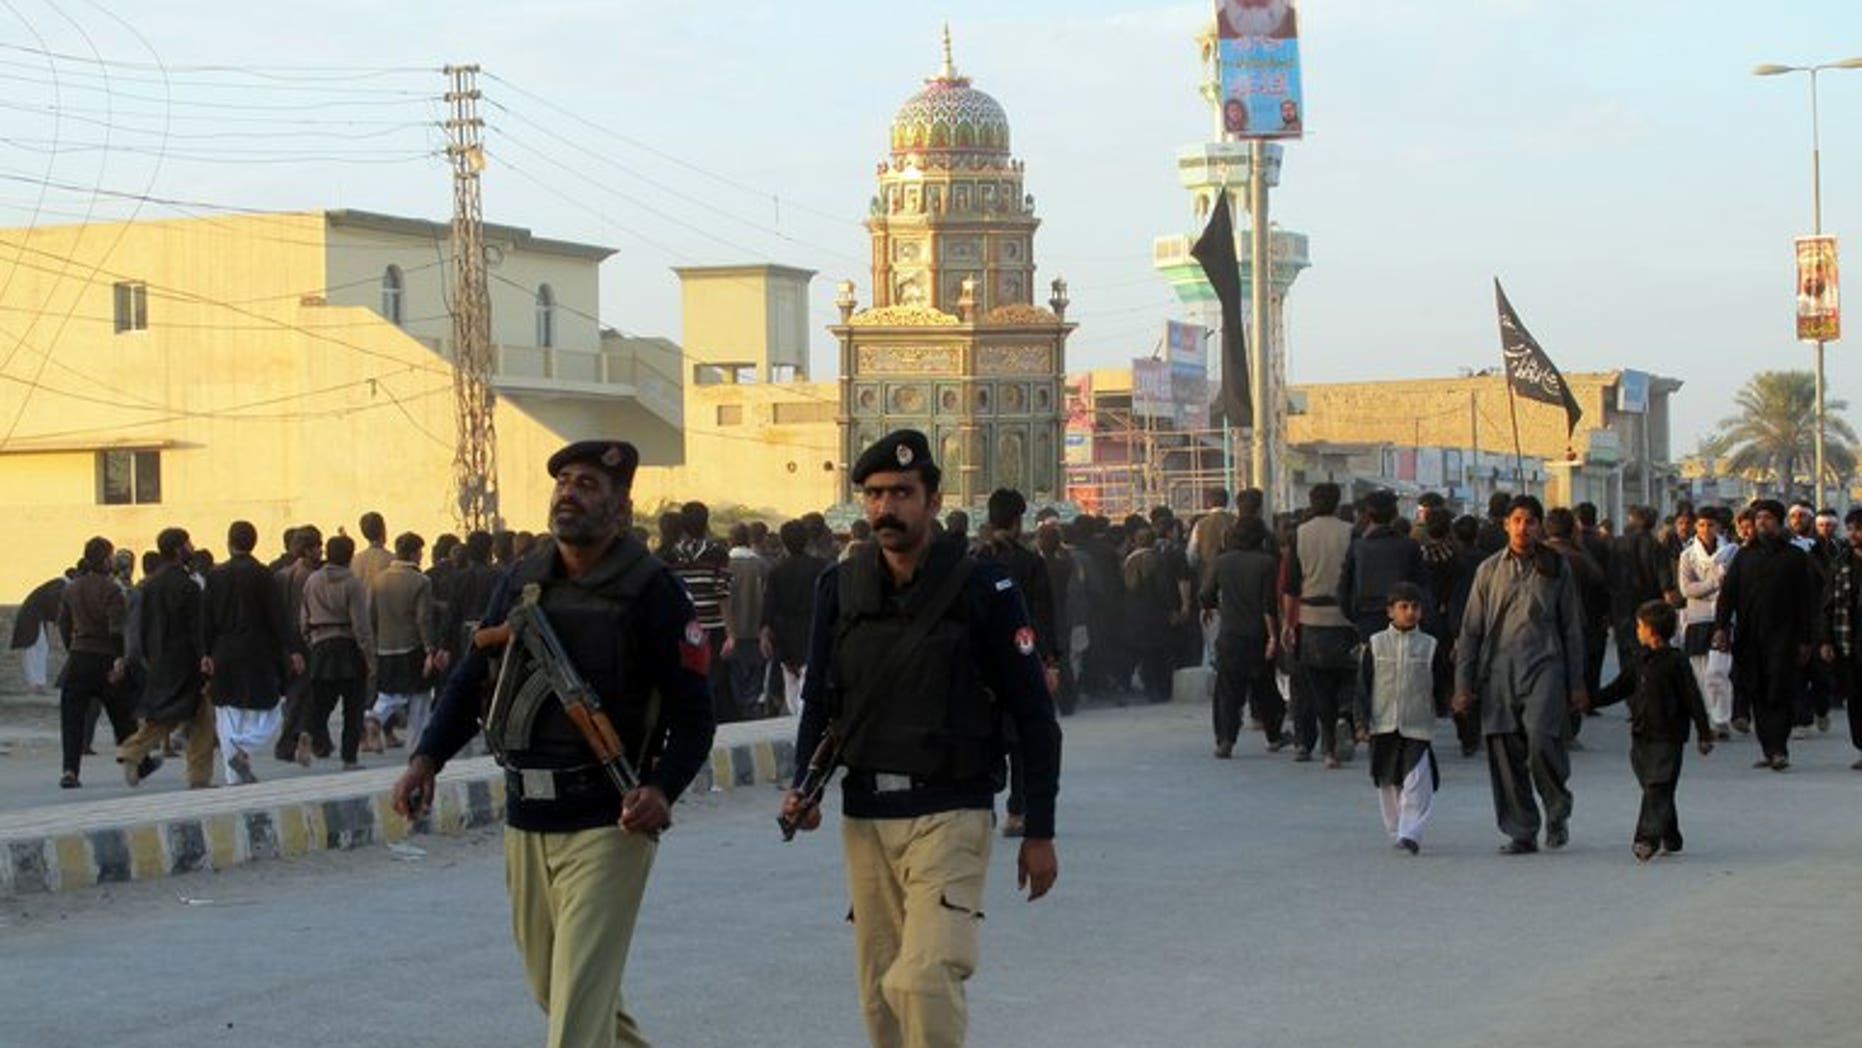 Pakistani policemen are seen in the city of Dera Ismail Khan on November 25, 2012. Militants attacked a prison in the city armed with mortars and are locked in a gunfight with police and security forces, officials said.